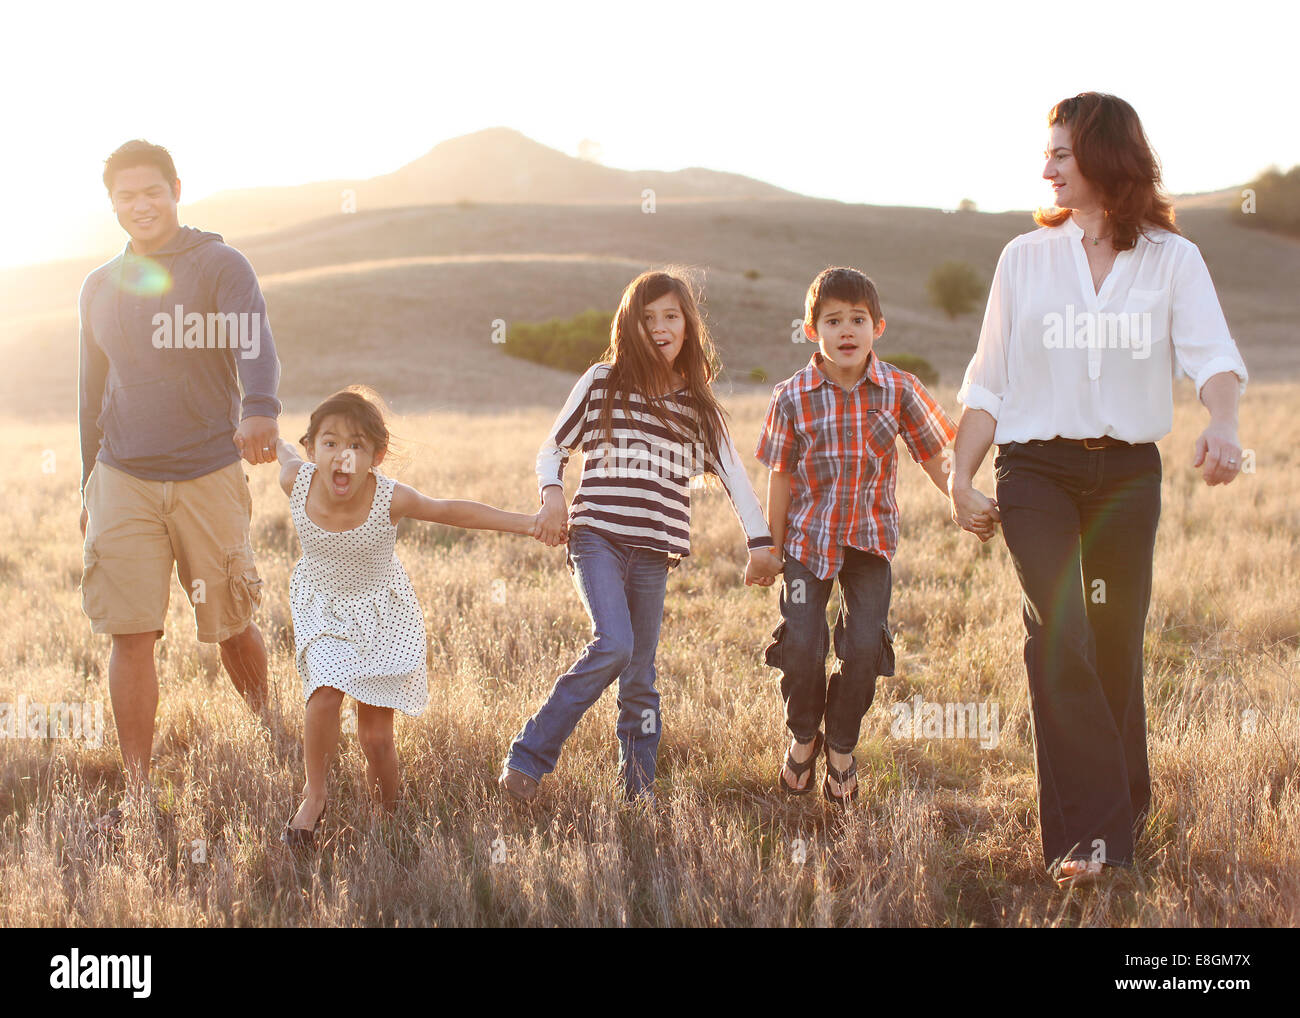 Family of five holding hands, walking in meadow - Stock Image